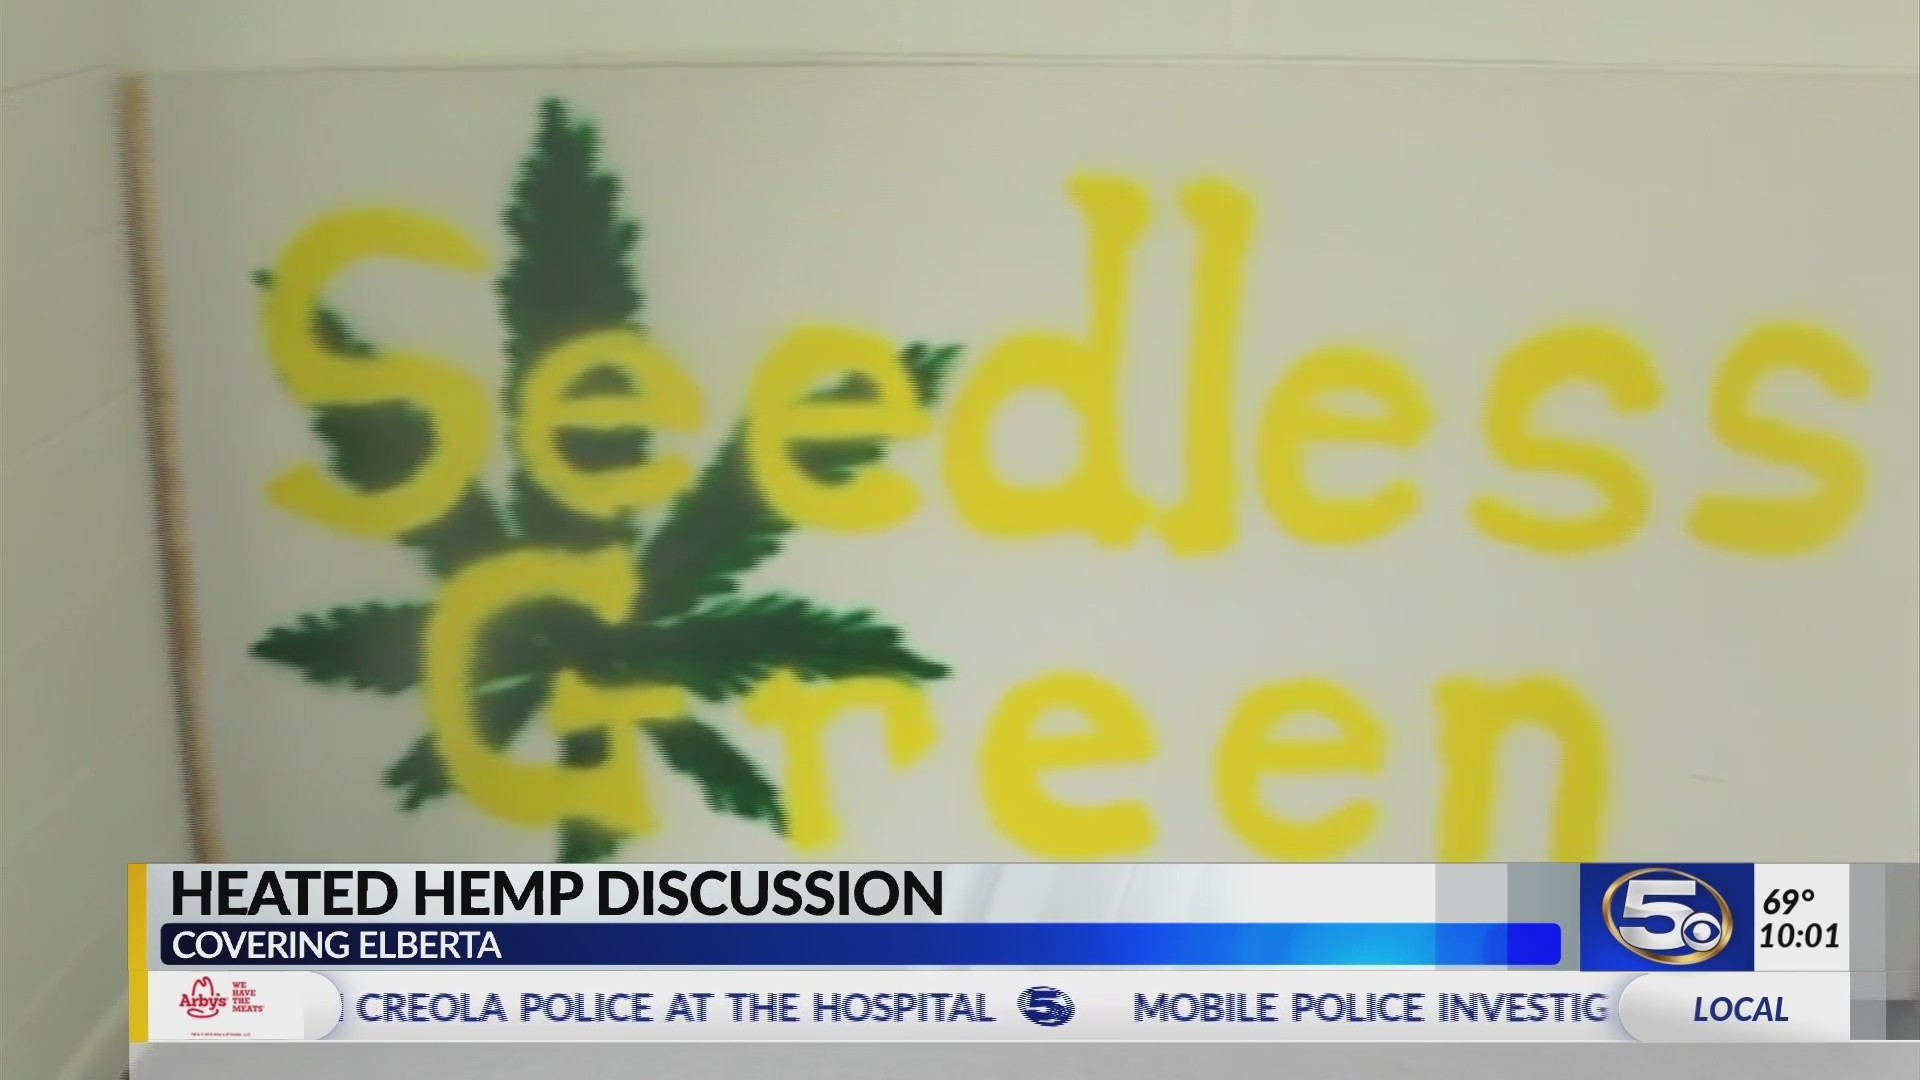 VIDEO: Elberta residents more concerned about stigma, sign, than hemp dispensary itself